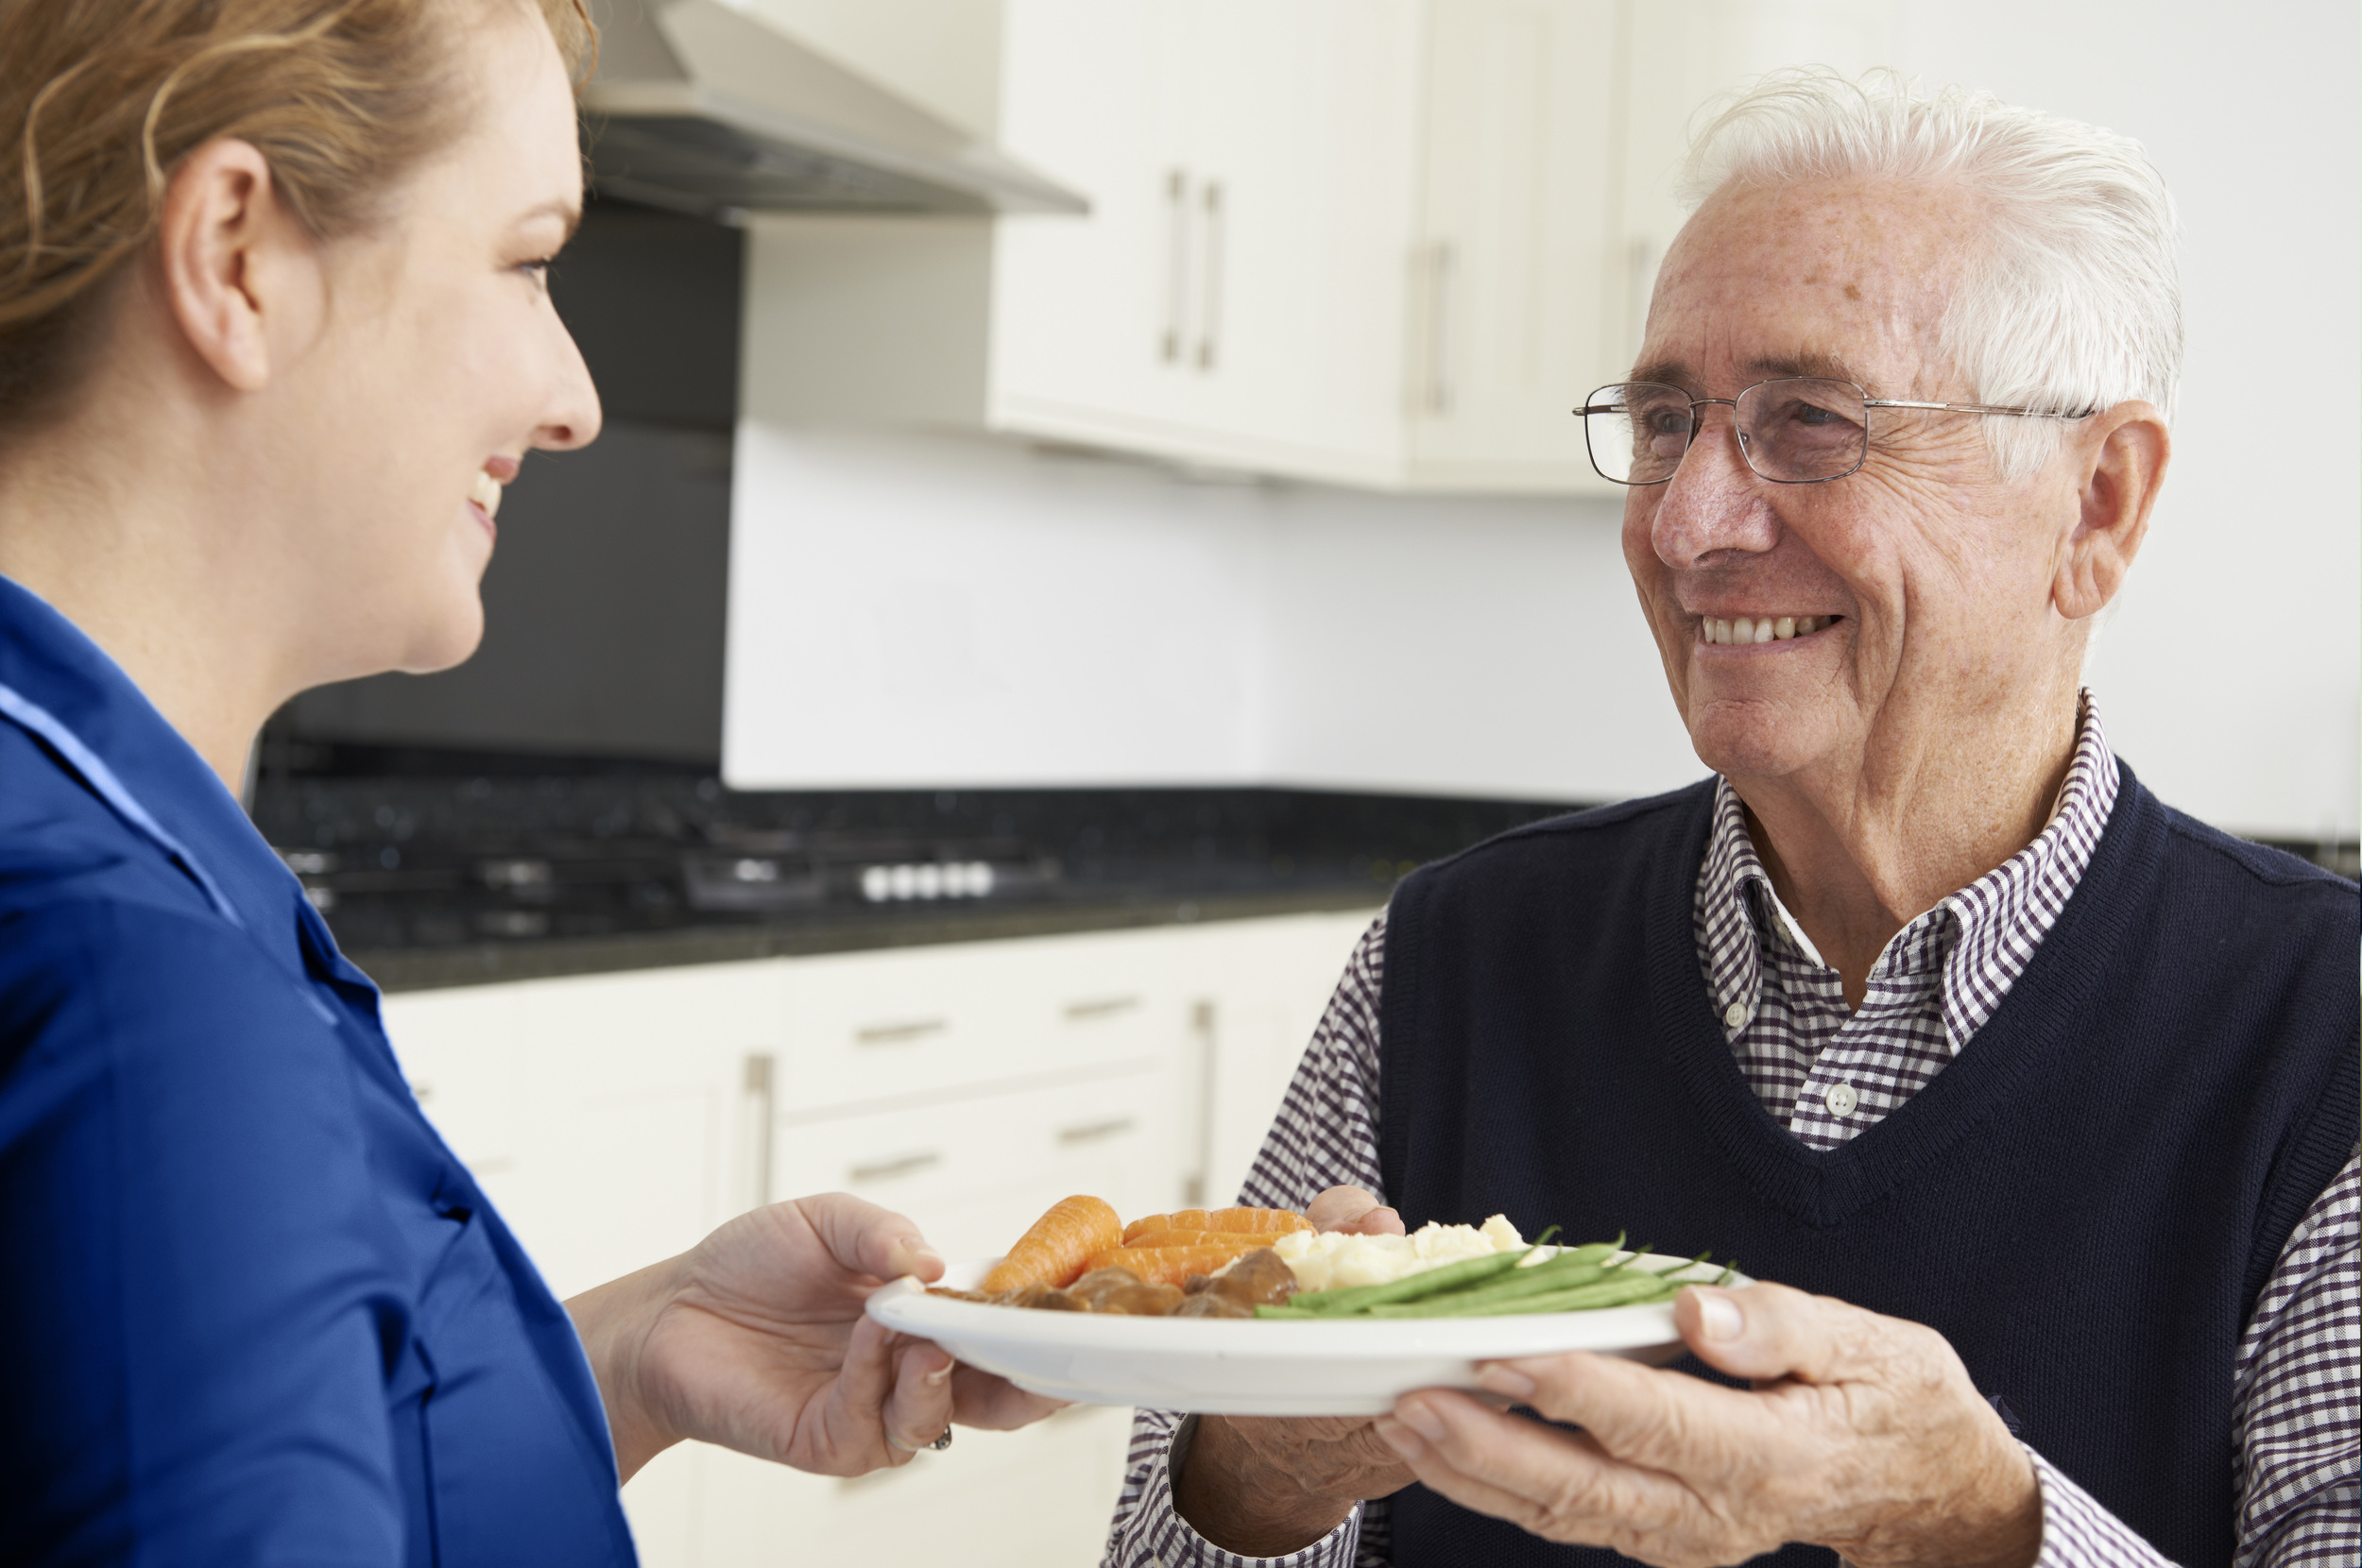 Assurance Home Care nurse helping patient cook dinner